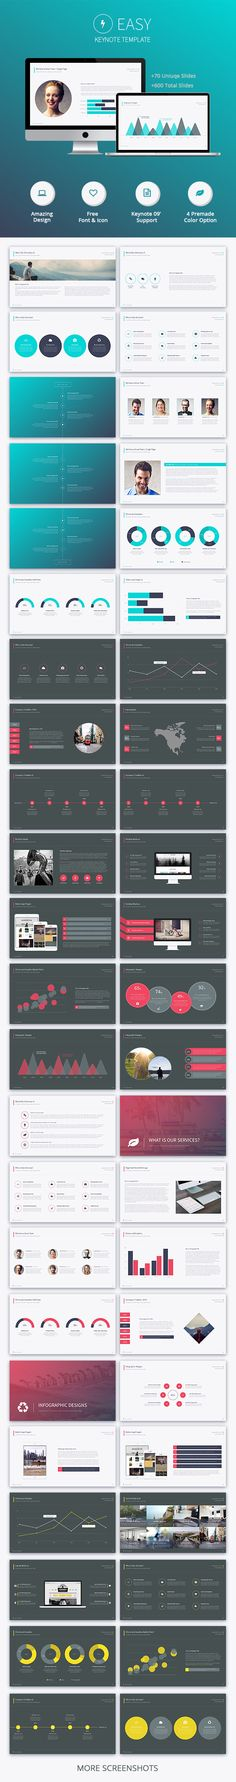 Easy Keynote Template #design Download: http://graphicriver.net/item/easy-keynote-template/11811289?ref=ksioks